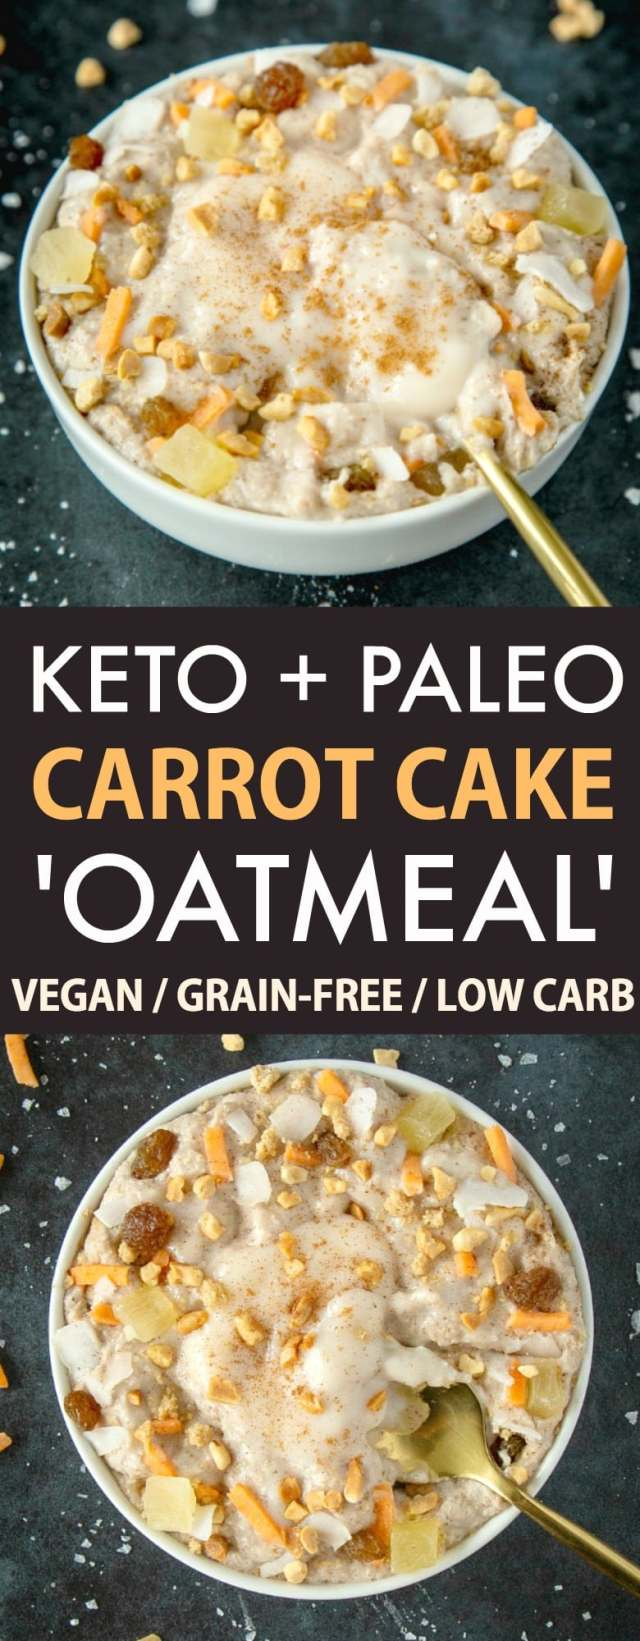 A collage of two photographs of carrot cake keto oatmeal- Each white bowl is filled with keto cereal, shredded carrots, roasted nuts, dried pineapple, raisins and a coconut butter frosting.